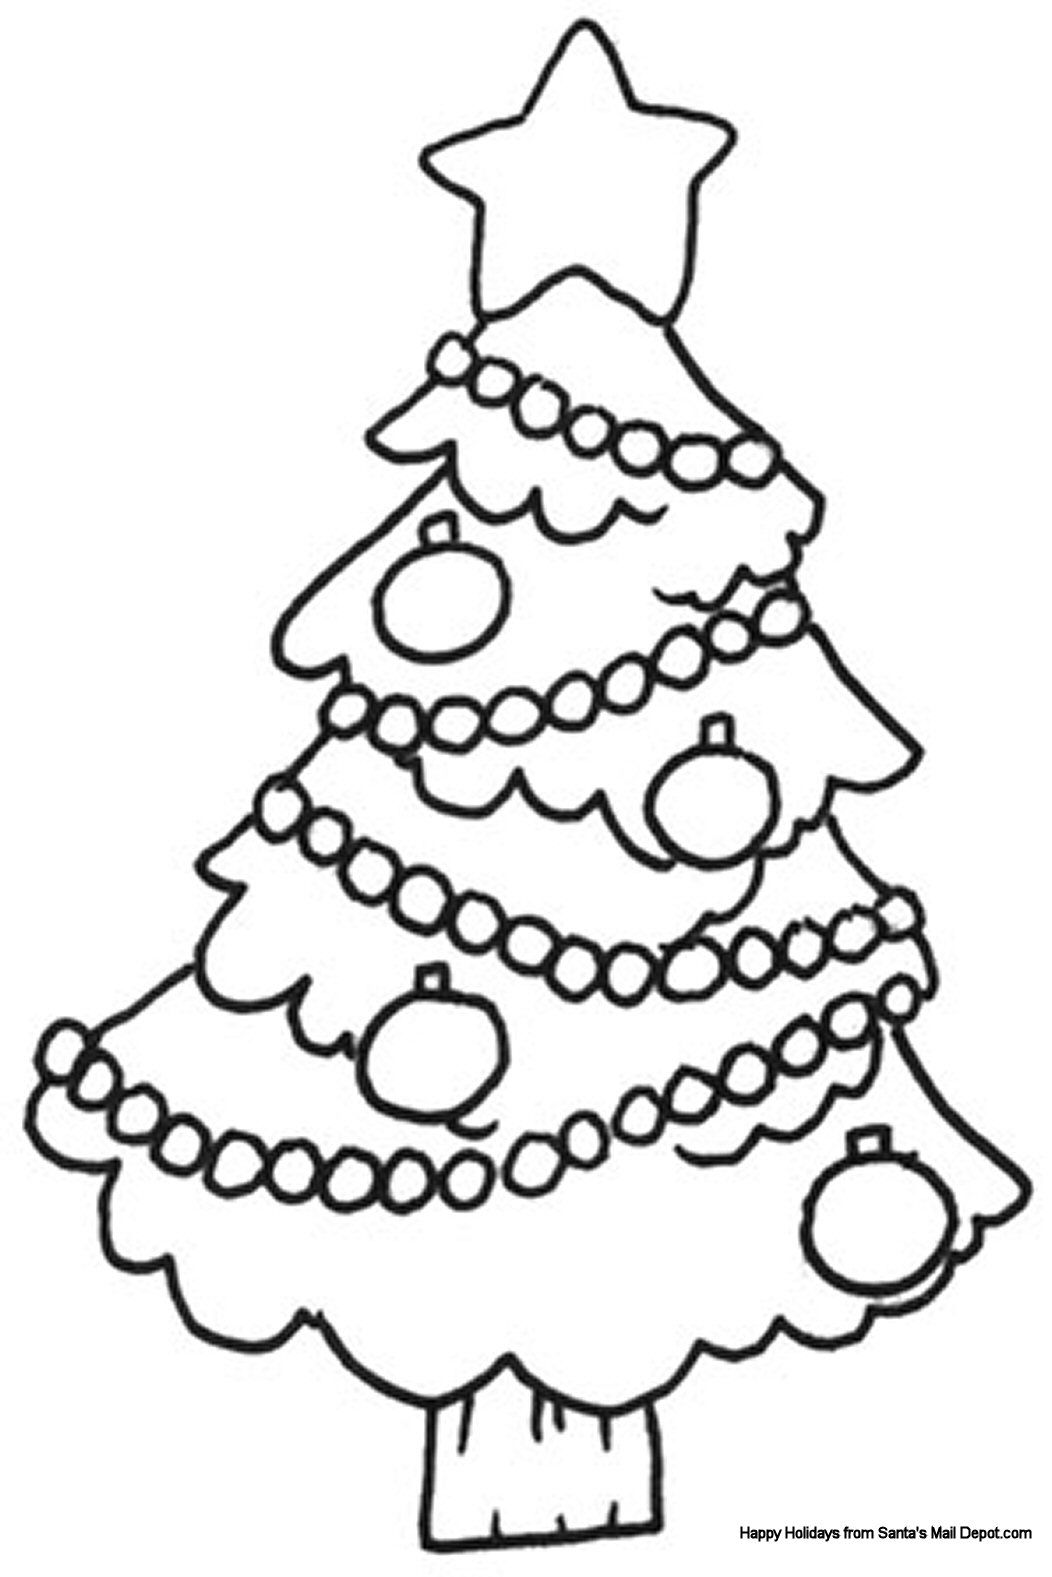 Christmas colouring in sheets printable - Christmas Colouring Sheet Printable Coloring Pages Sheets For Kids Get The Latest Free Christmas Colouring Sheet Images Favorite Coloring Pages To Print